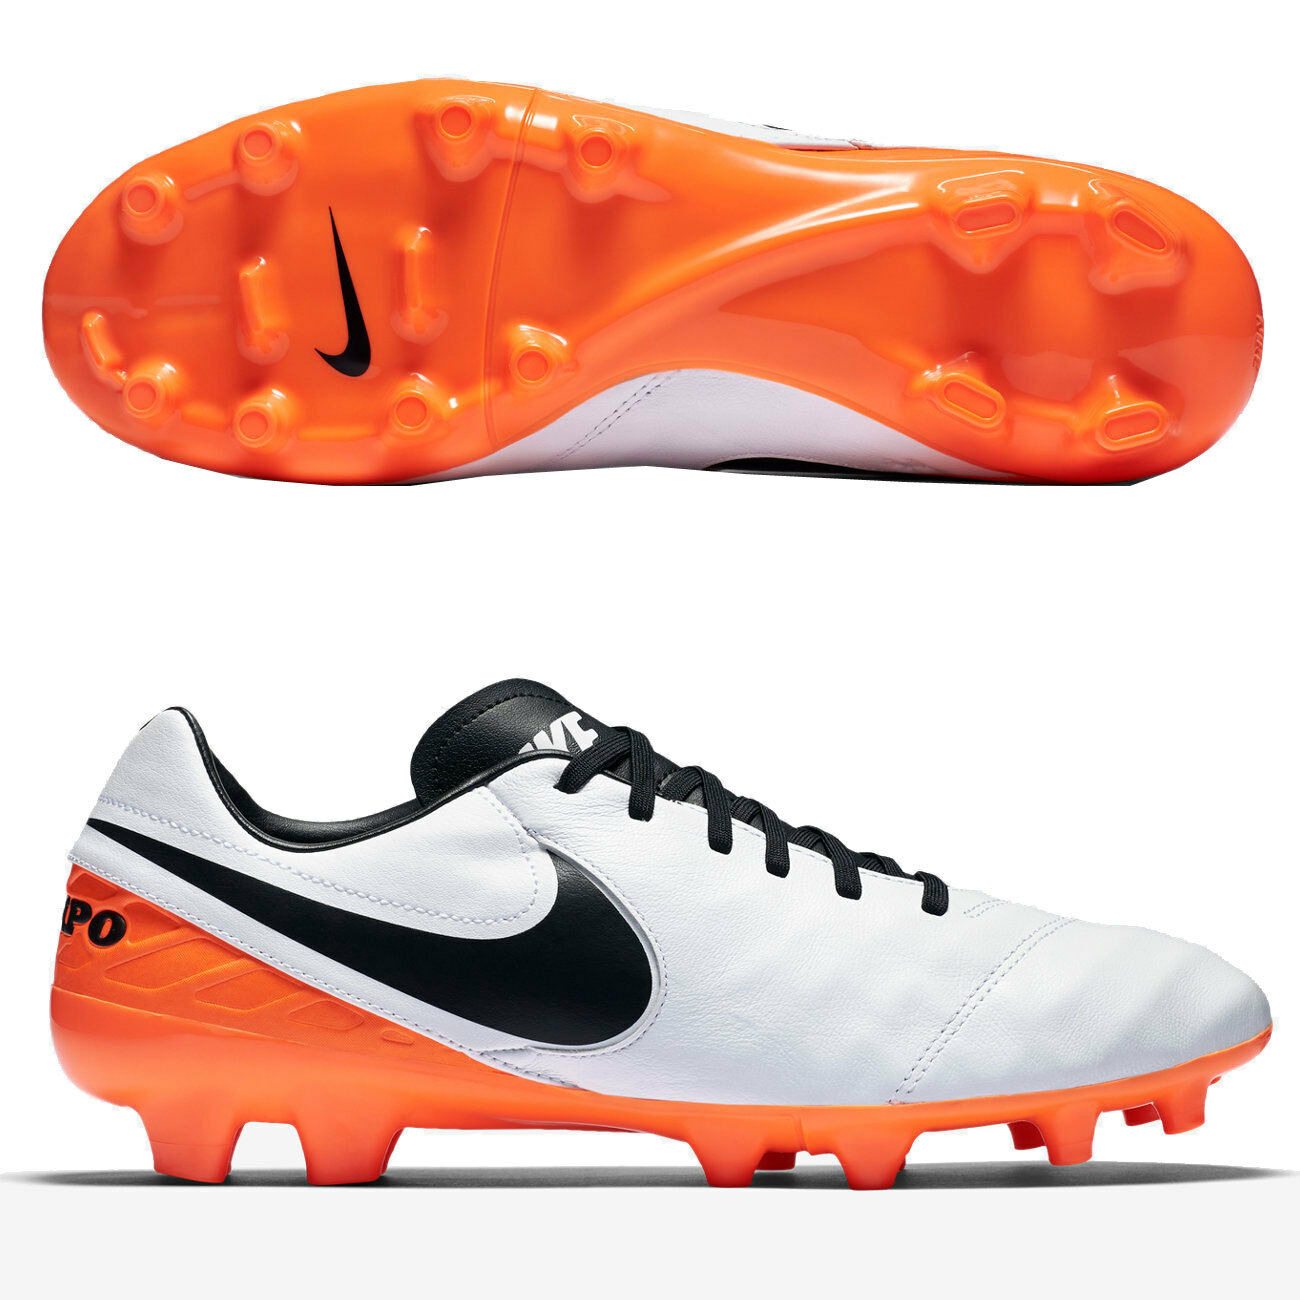 NIKE TIEMPO MYSTIC V FG Men's Soccer Shoes Style 819236-108 MSRP Price reduction